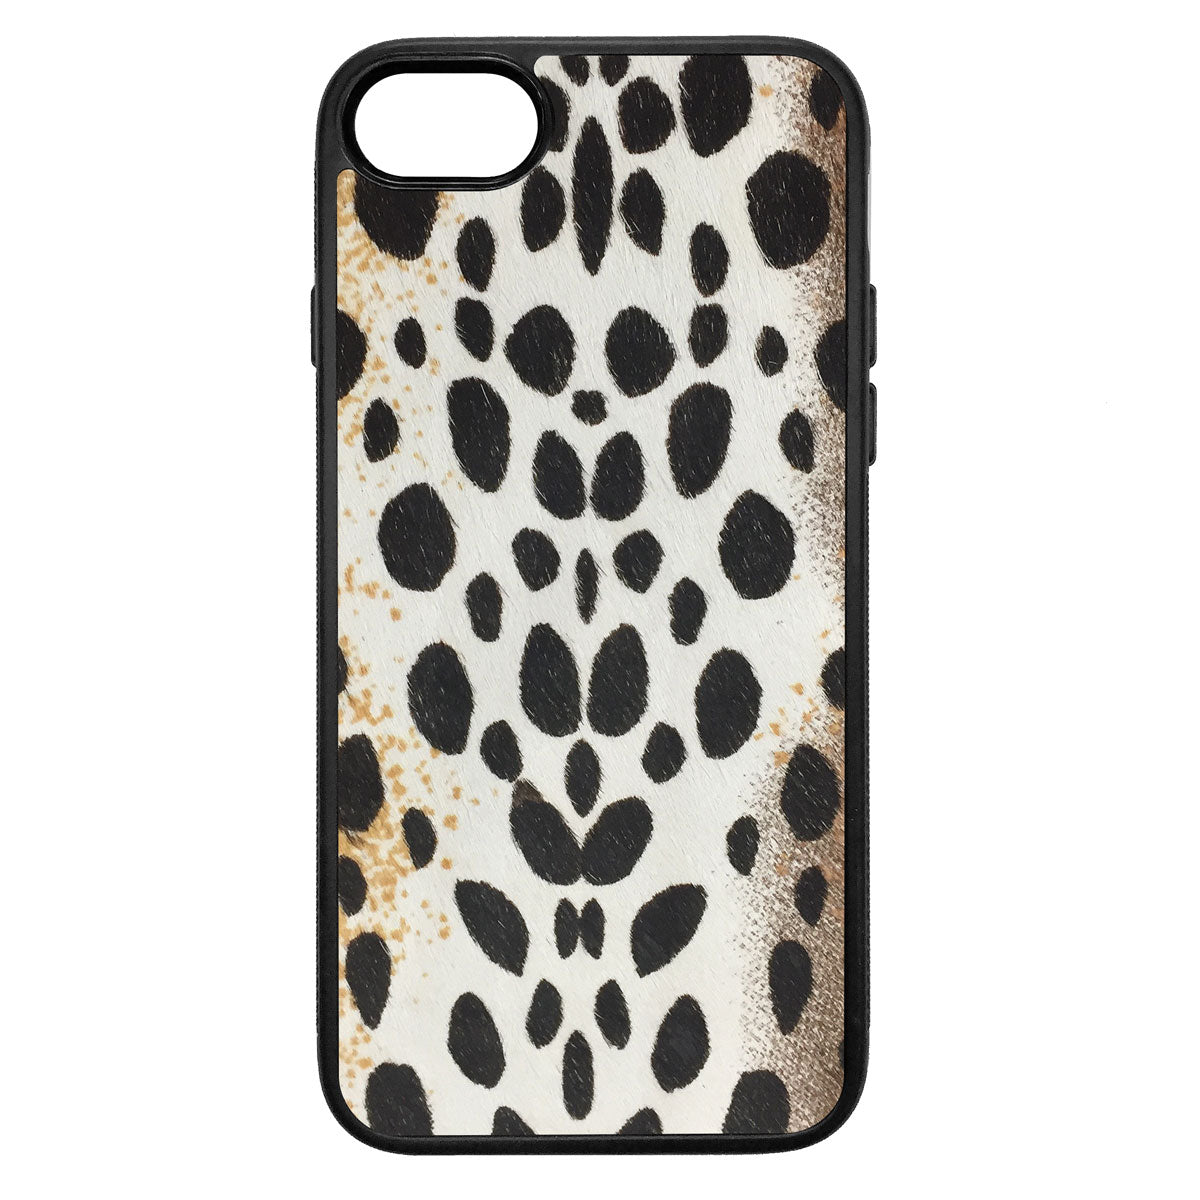 White Cheetah Pony Hair iPhone 8 Leather Case